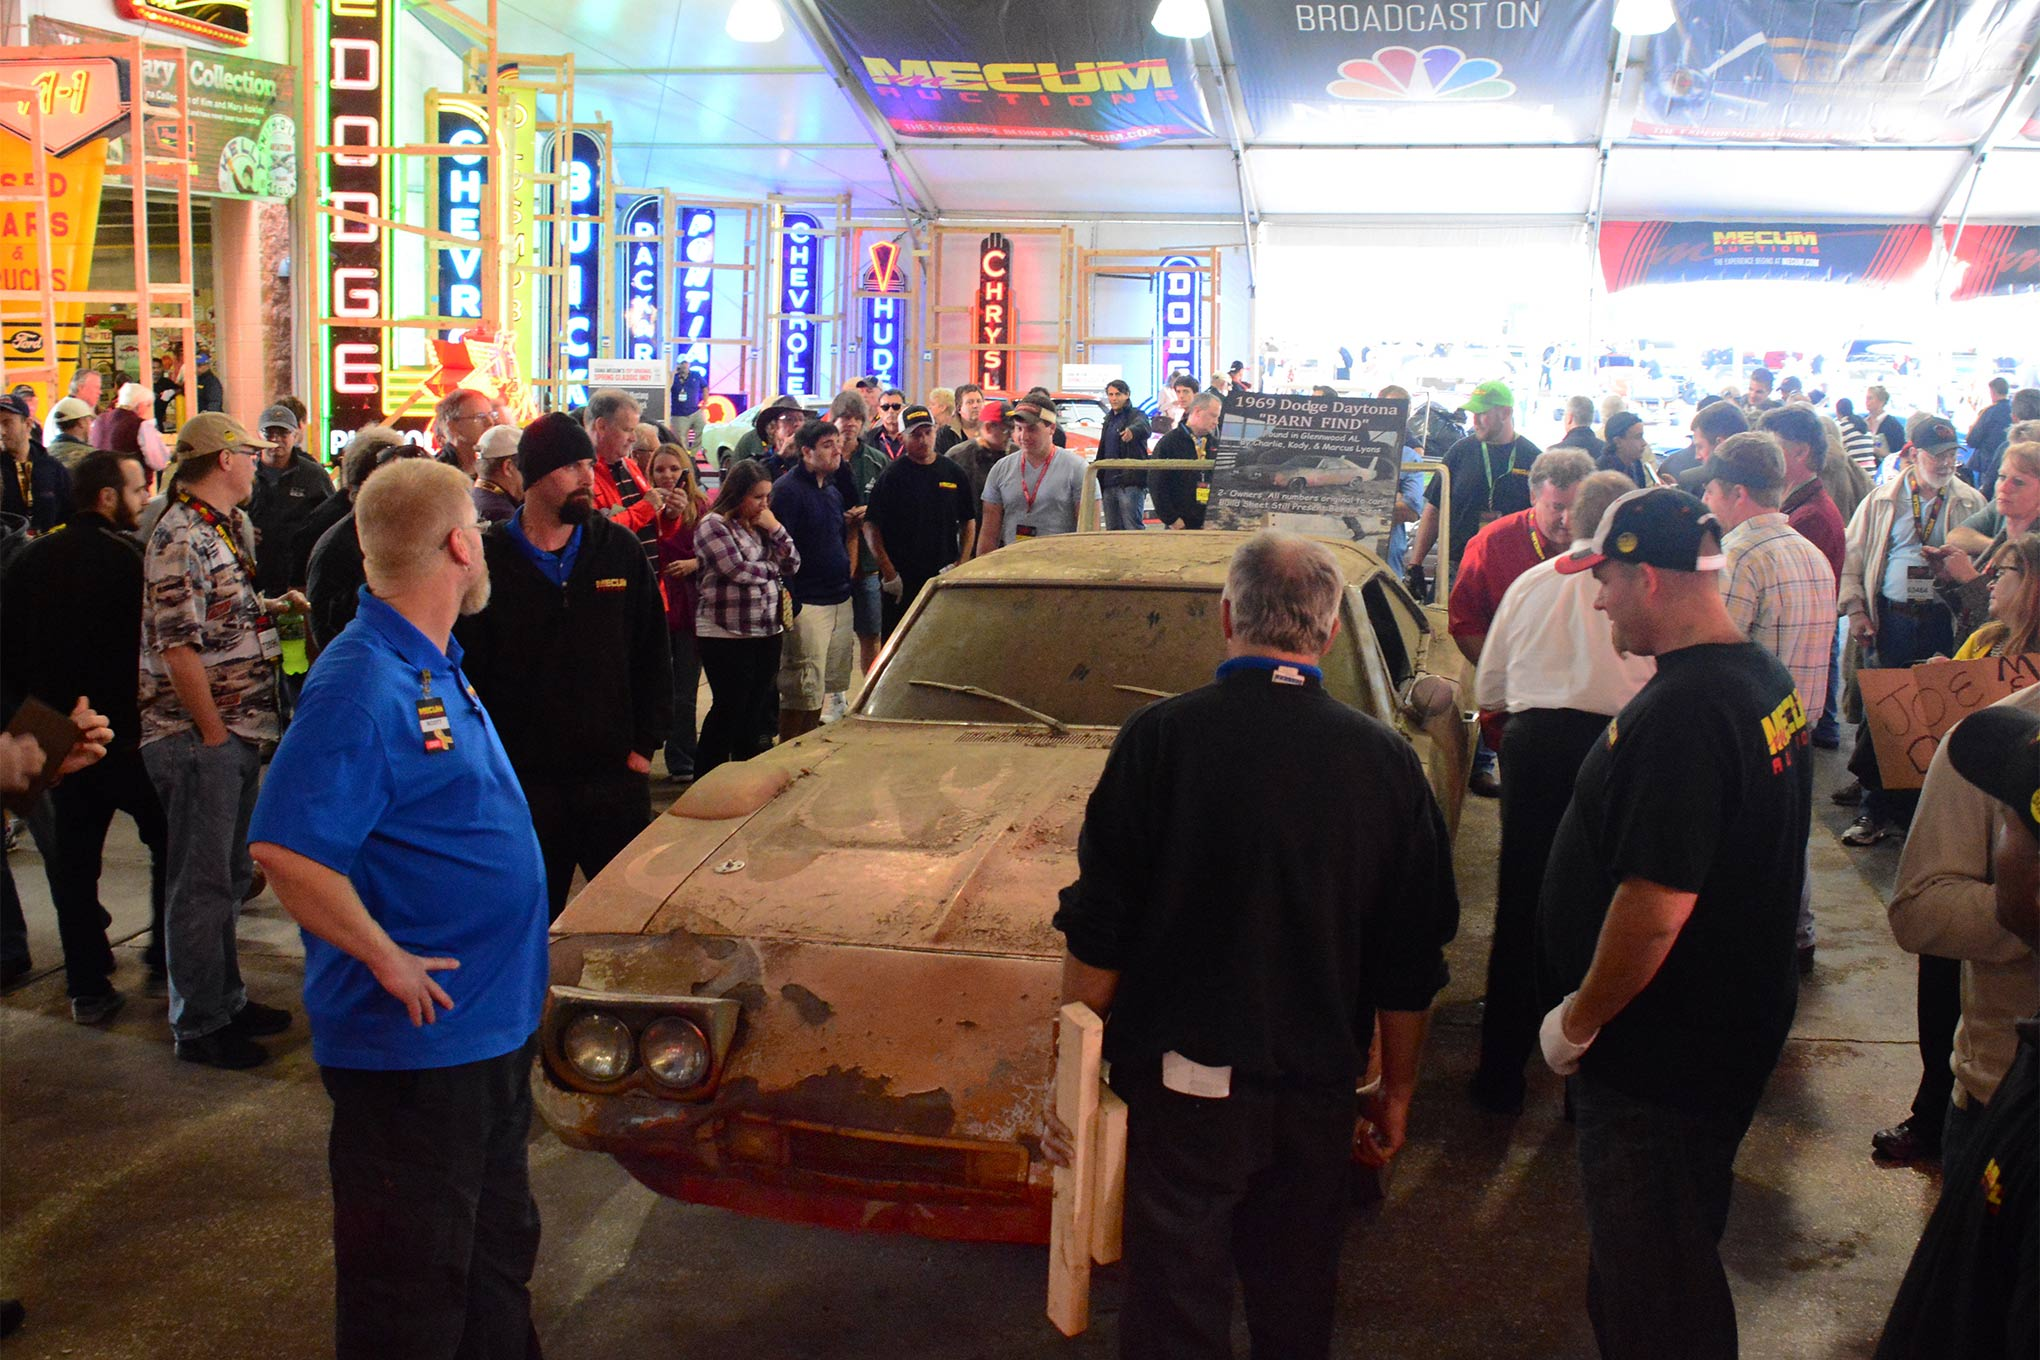 As the barn find Daytona prepared to go into the actual auction hall from the pre-stage area, the atmosphere was charged with excitement. What would the car bring in real-world dollars?